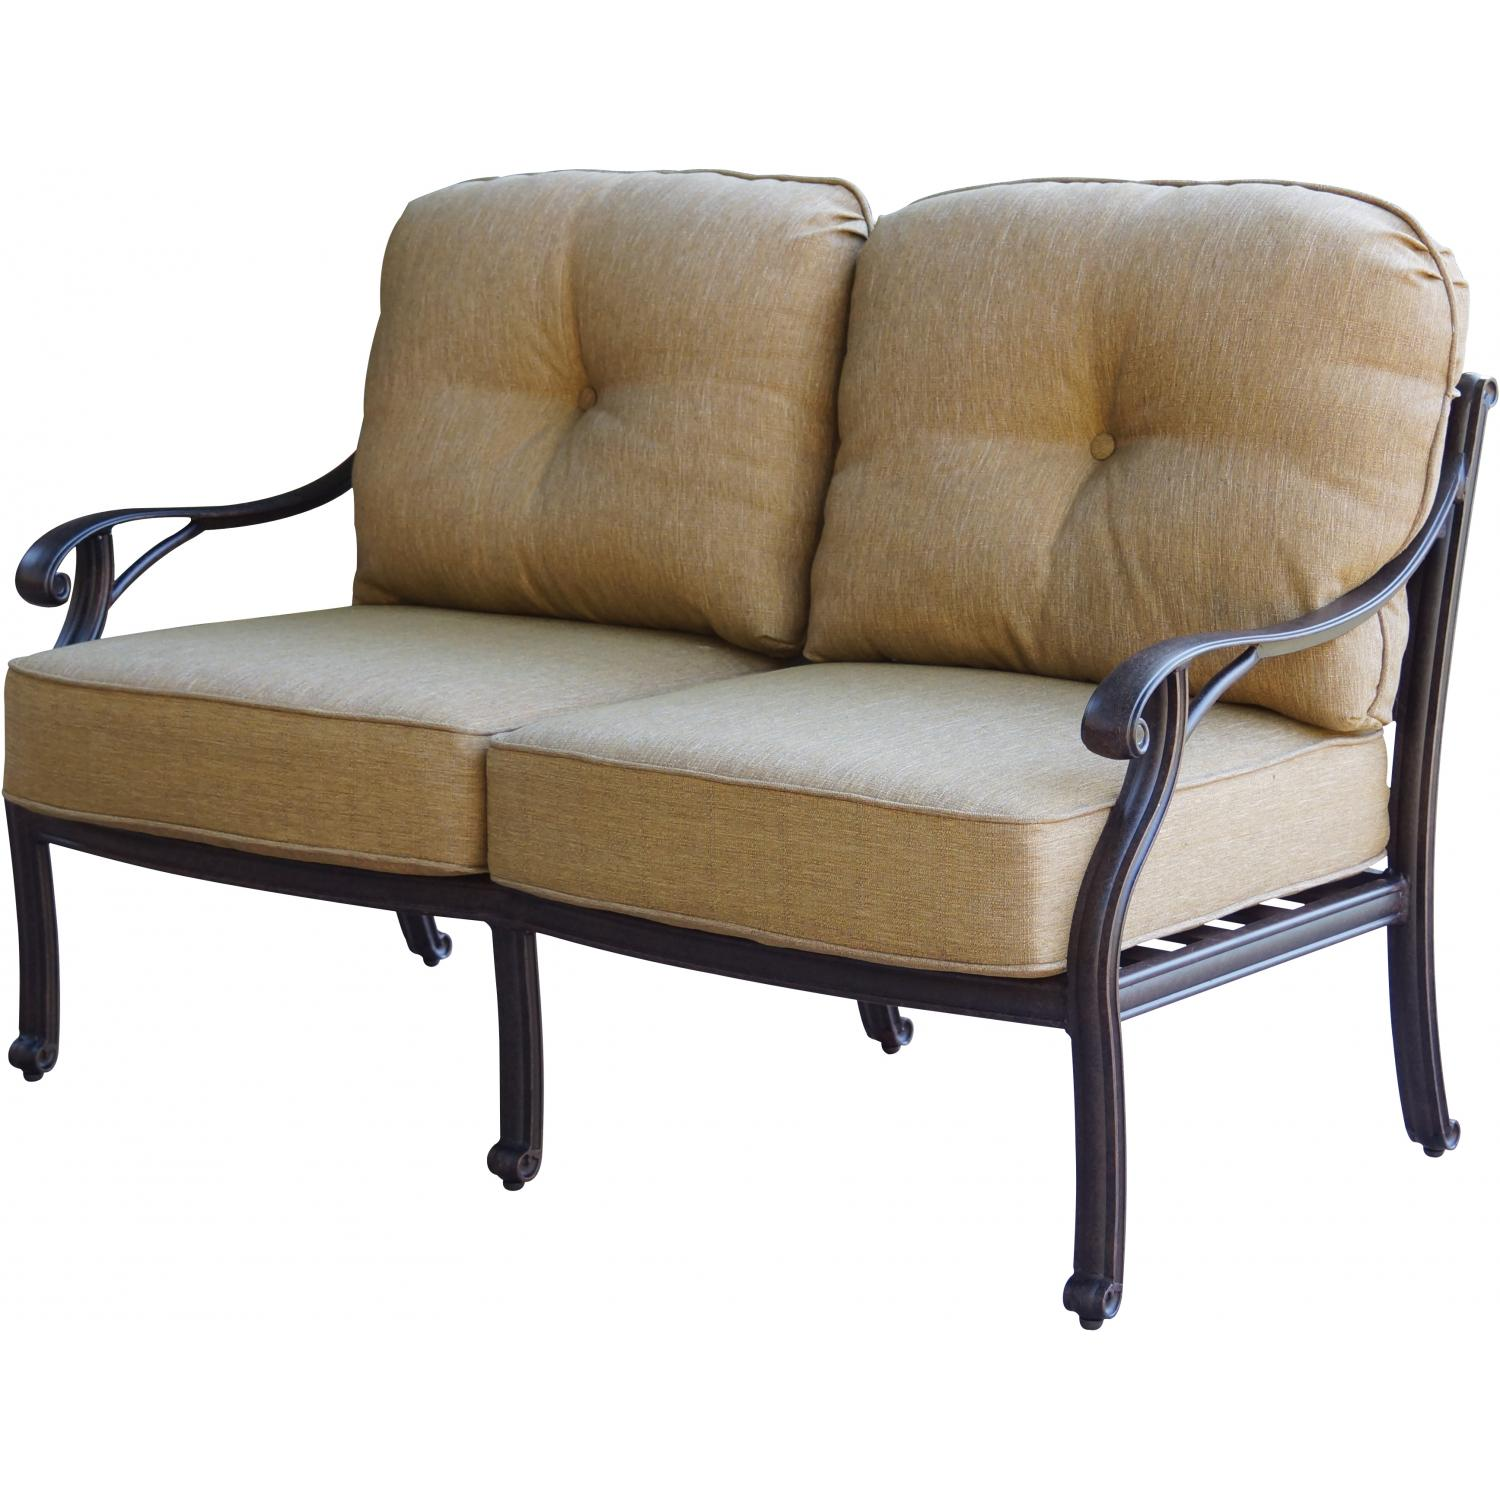 Patio furniture deep seating loveseat cast aluminum nassau for Deep seating outdoor furniture